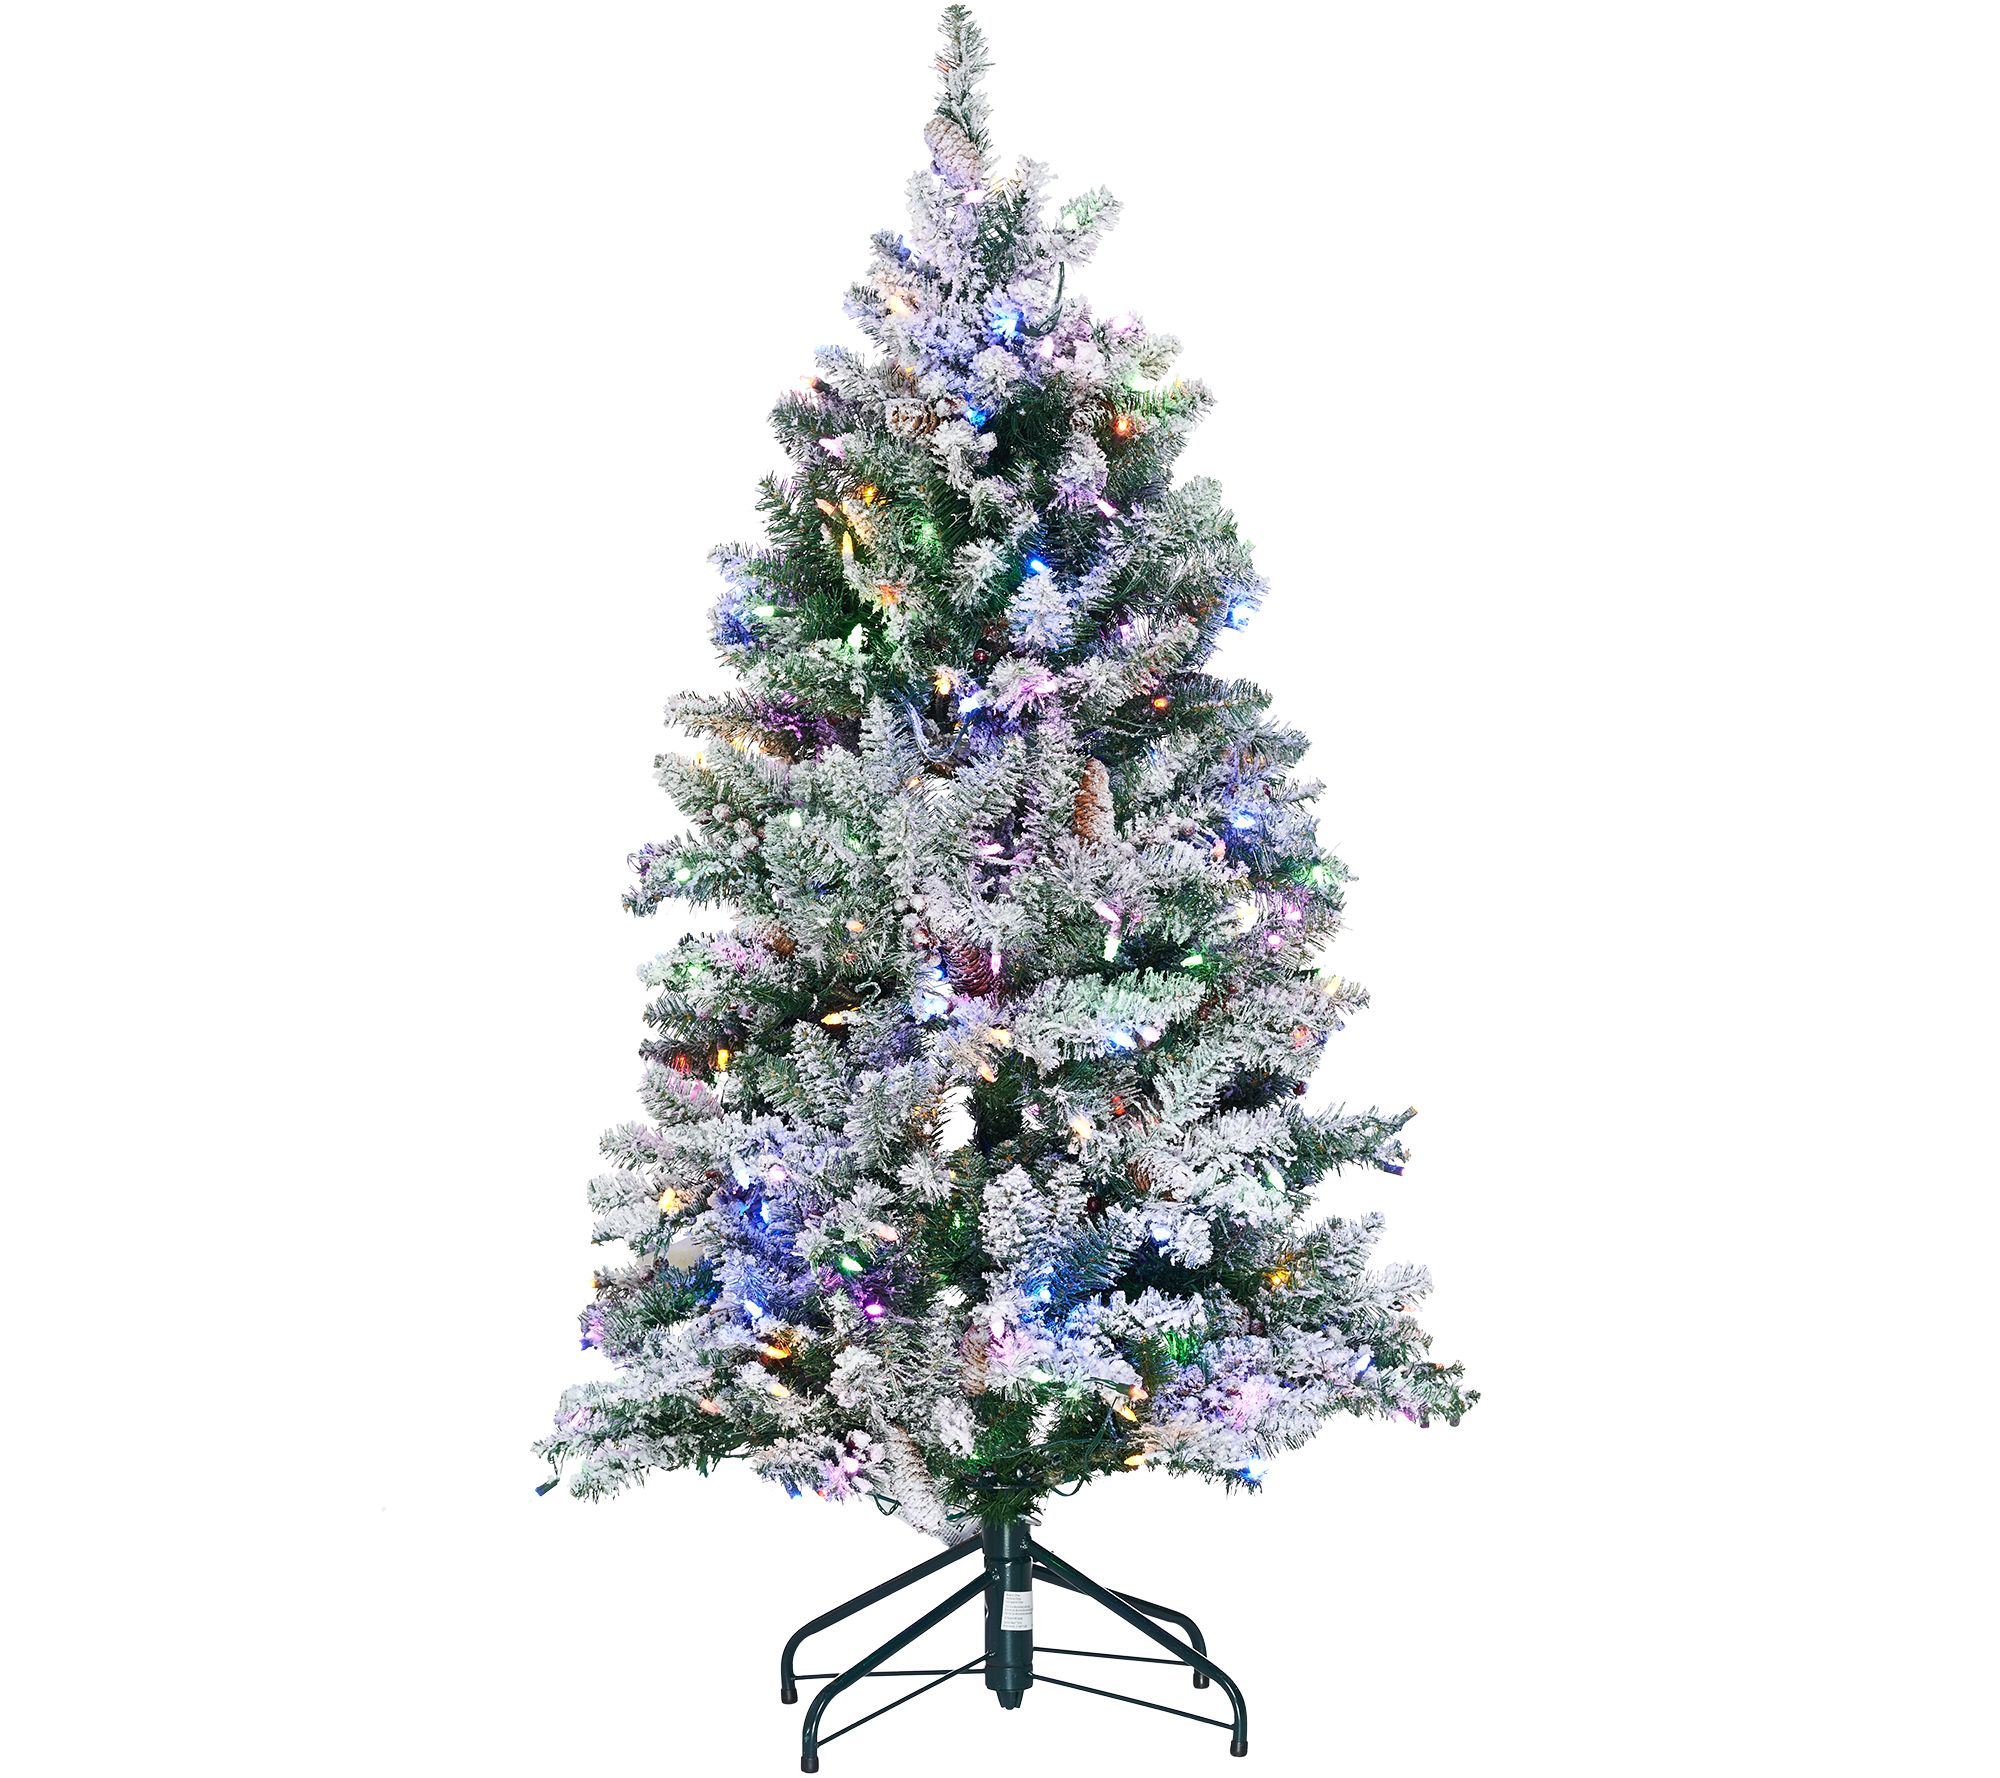 discount christmas trees online part 15 ed on air santau0027s best 5u0027 frosted simon - Cheap Christmas Trees Online